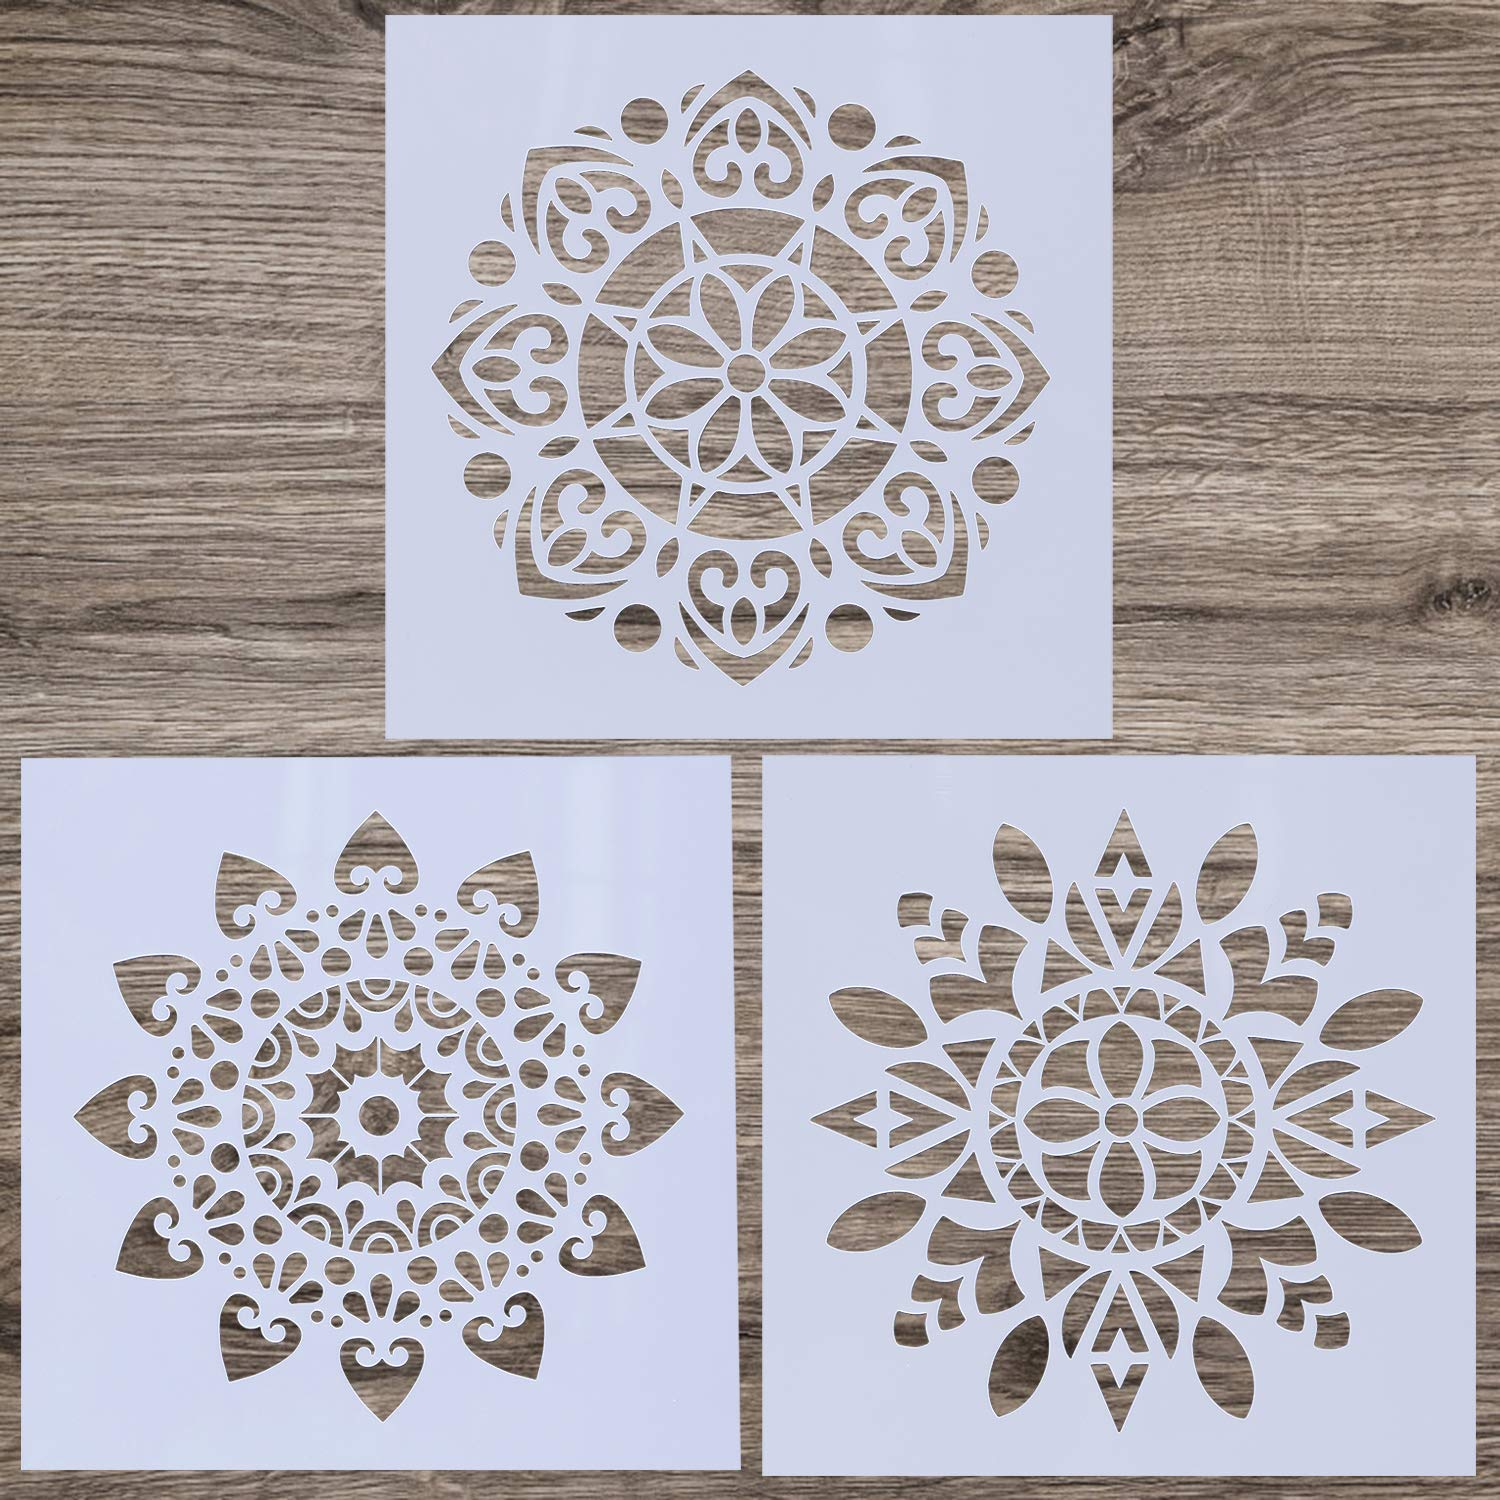 LOCOLO 3 Pieces Mandala Floor Stencil (12x12 inch) Reusable Painting Stencil, Laser Cut Painting Template for DIY Decor Wall Tile Wood Furniture Fabric, Painting on Wood, Airbrush, Rocks by LOCOLO